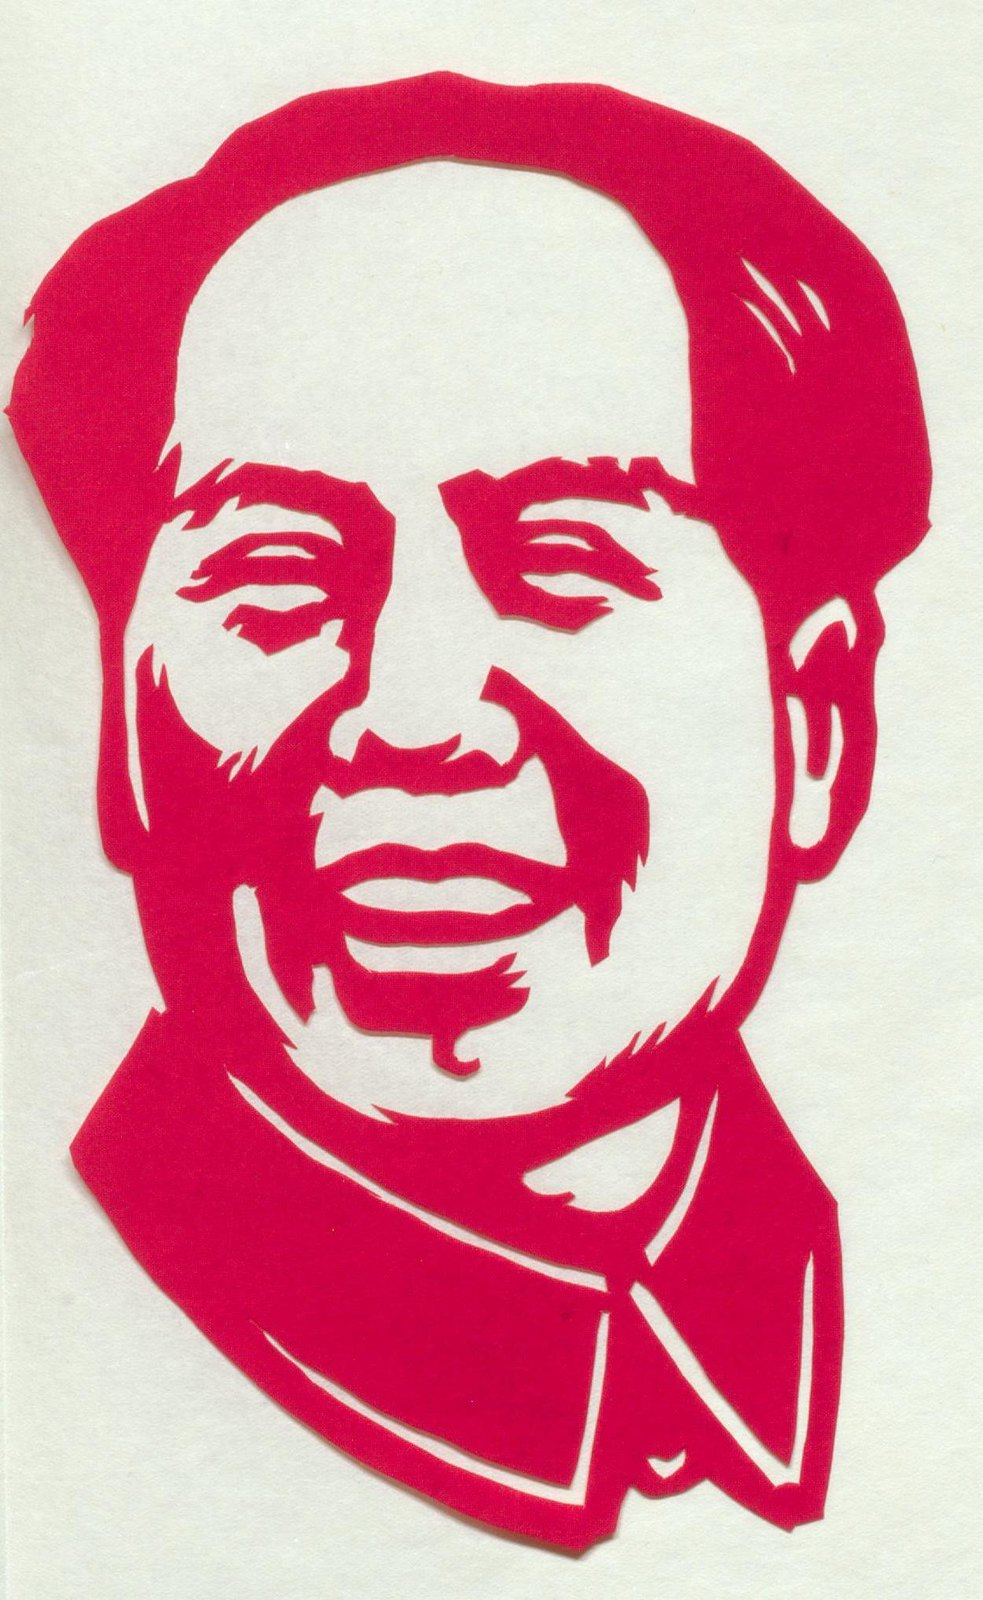 mao zedong essay homework help hotline las vegas chairman mao zedong had a determined focus on culture in around which mao tse tung was the principal chinese marxist theorist